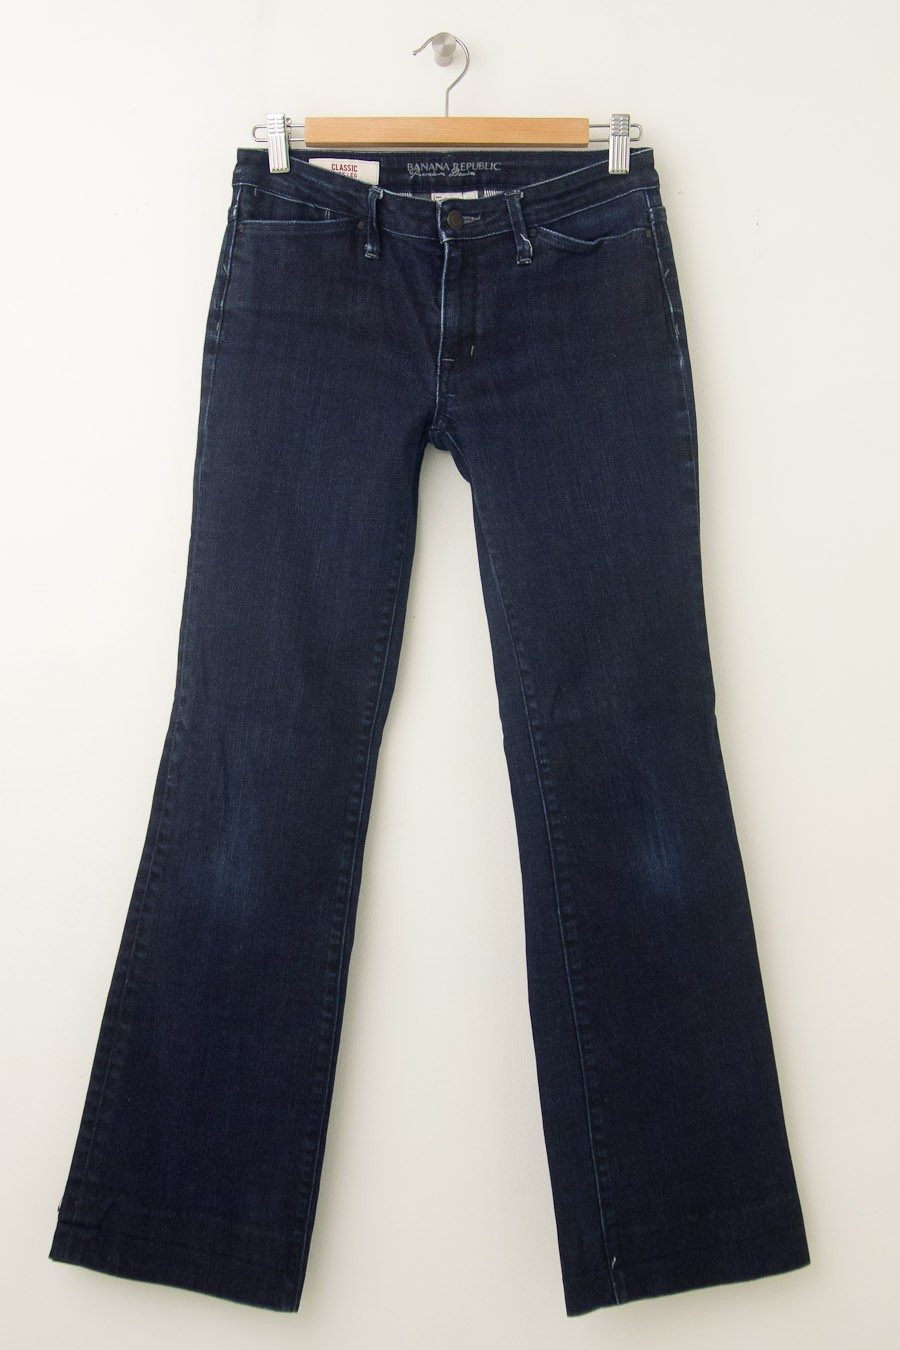 Banana Republic Classic Wide Leg Jeans Women's 2 (hemmed)